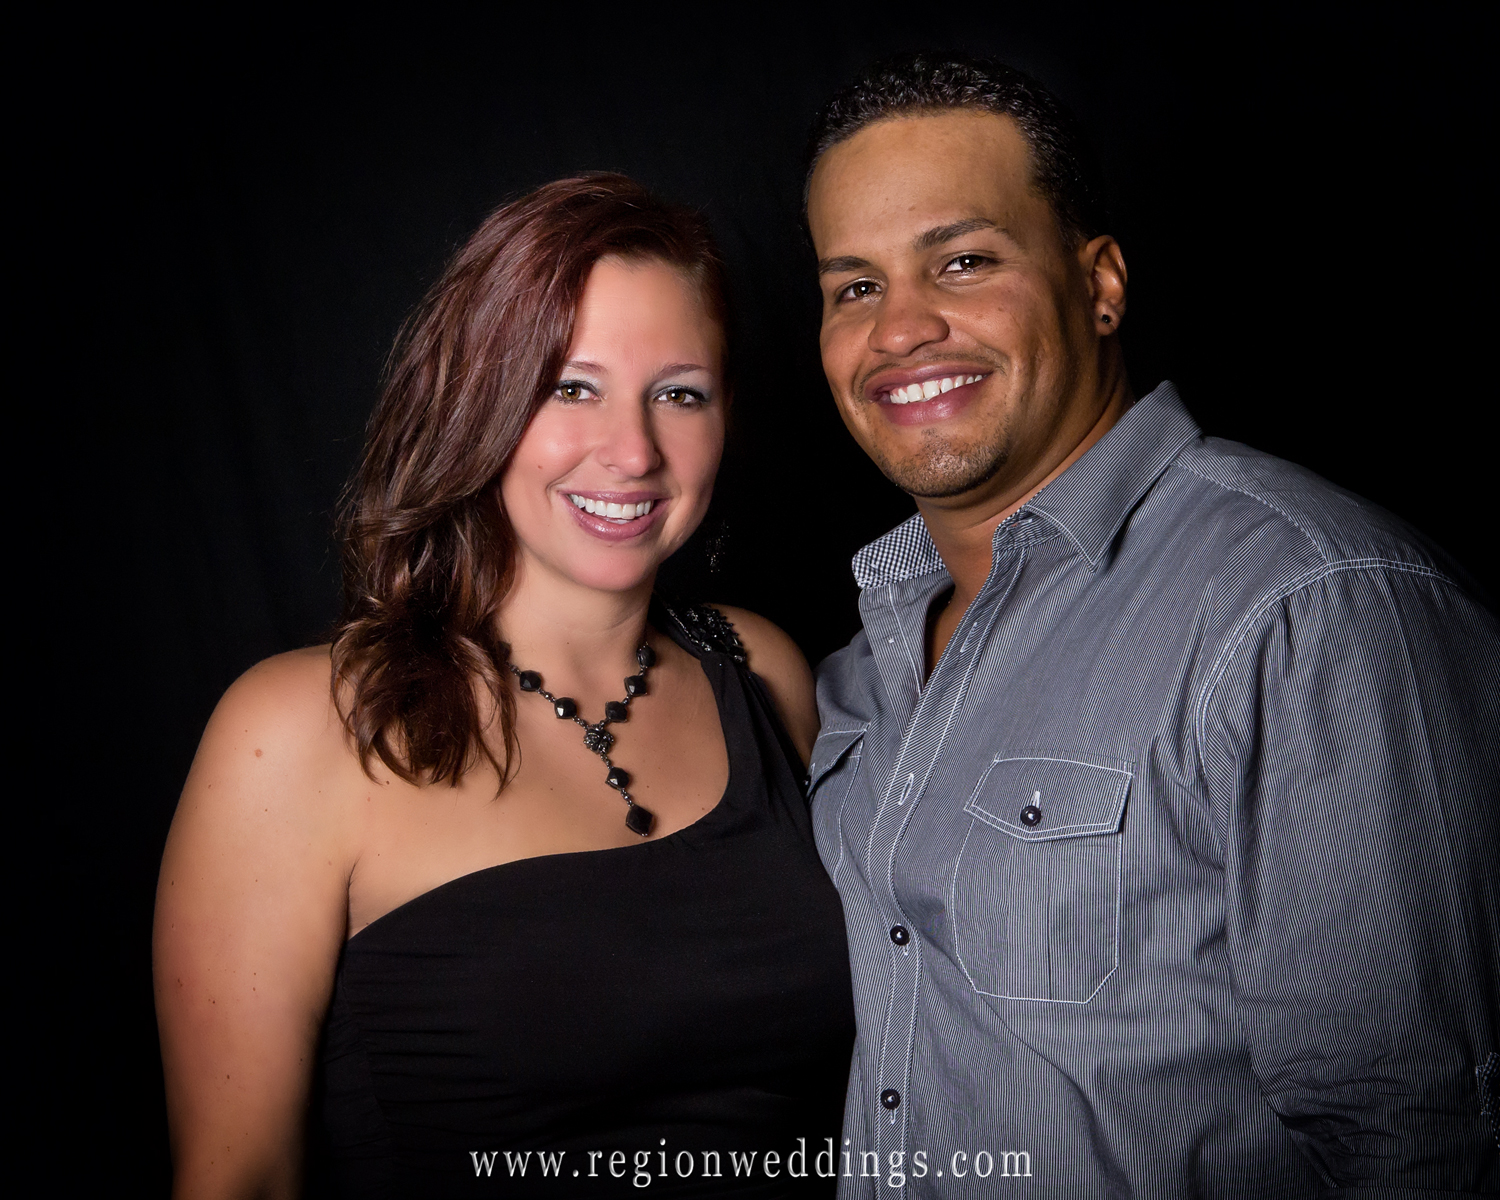 A couple poses for studio style portraits at their friend's wedding reception at Cloister in the Woods.